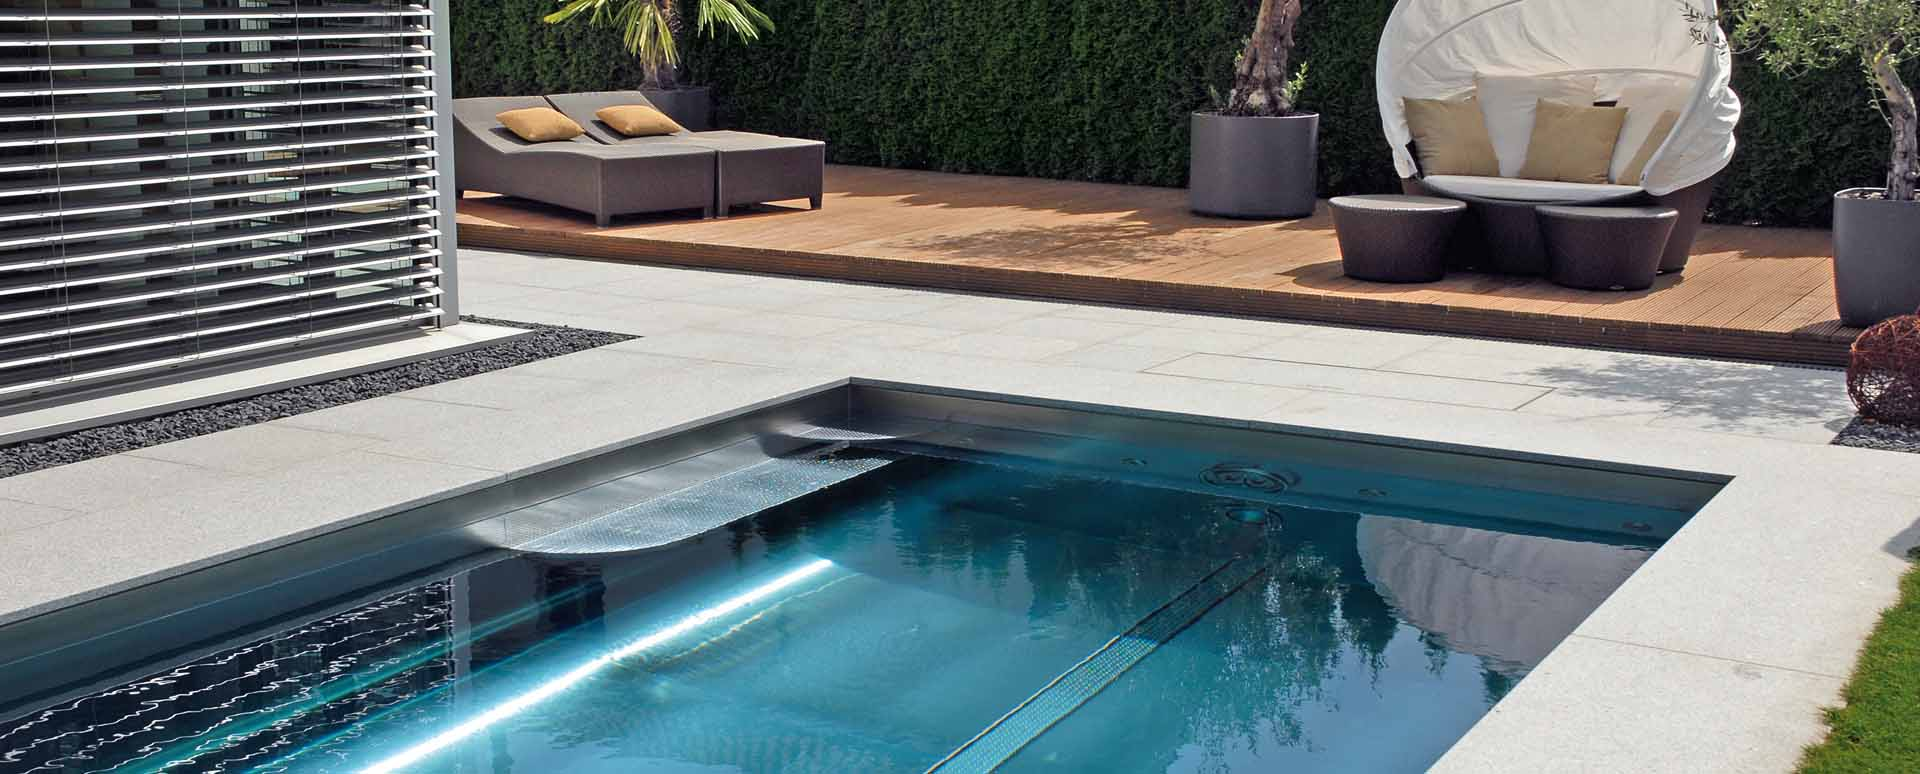 Stainless Steel Pools – Polytherm